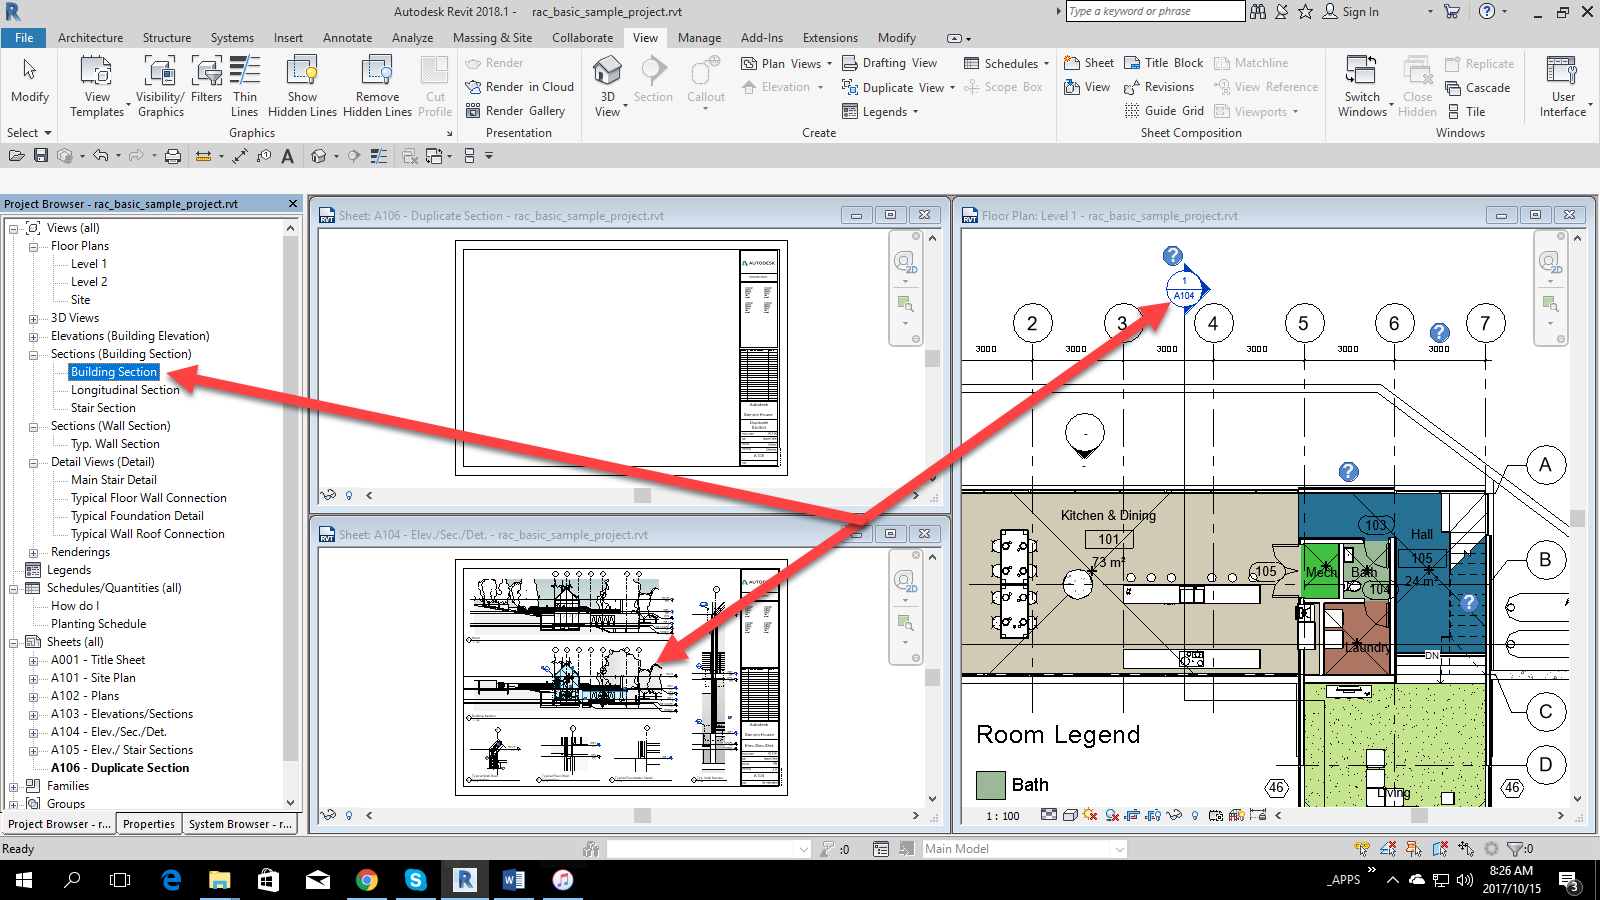 1-2 Revit – Duplicated Section Headers